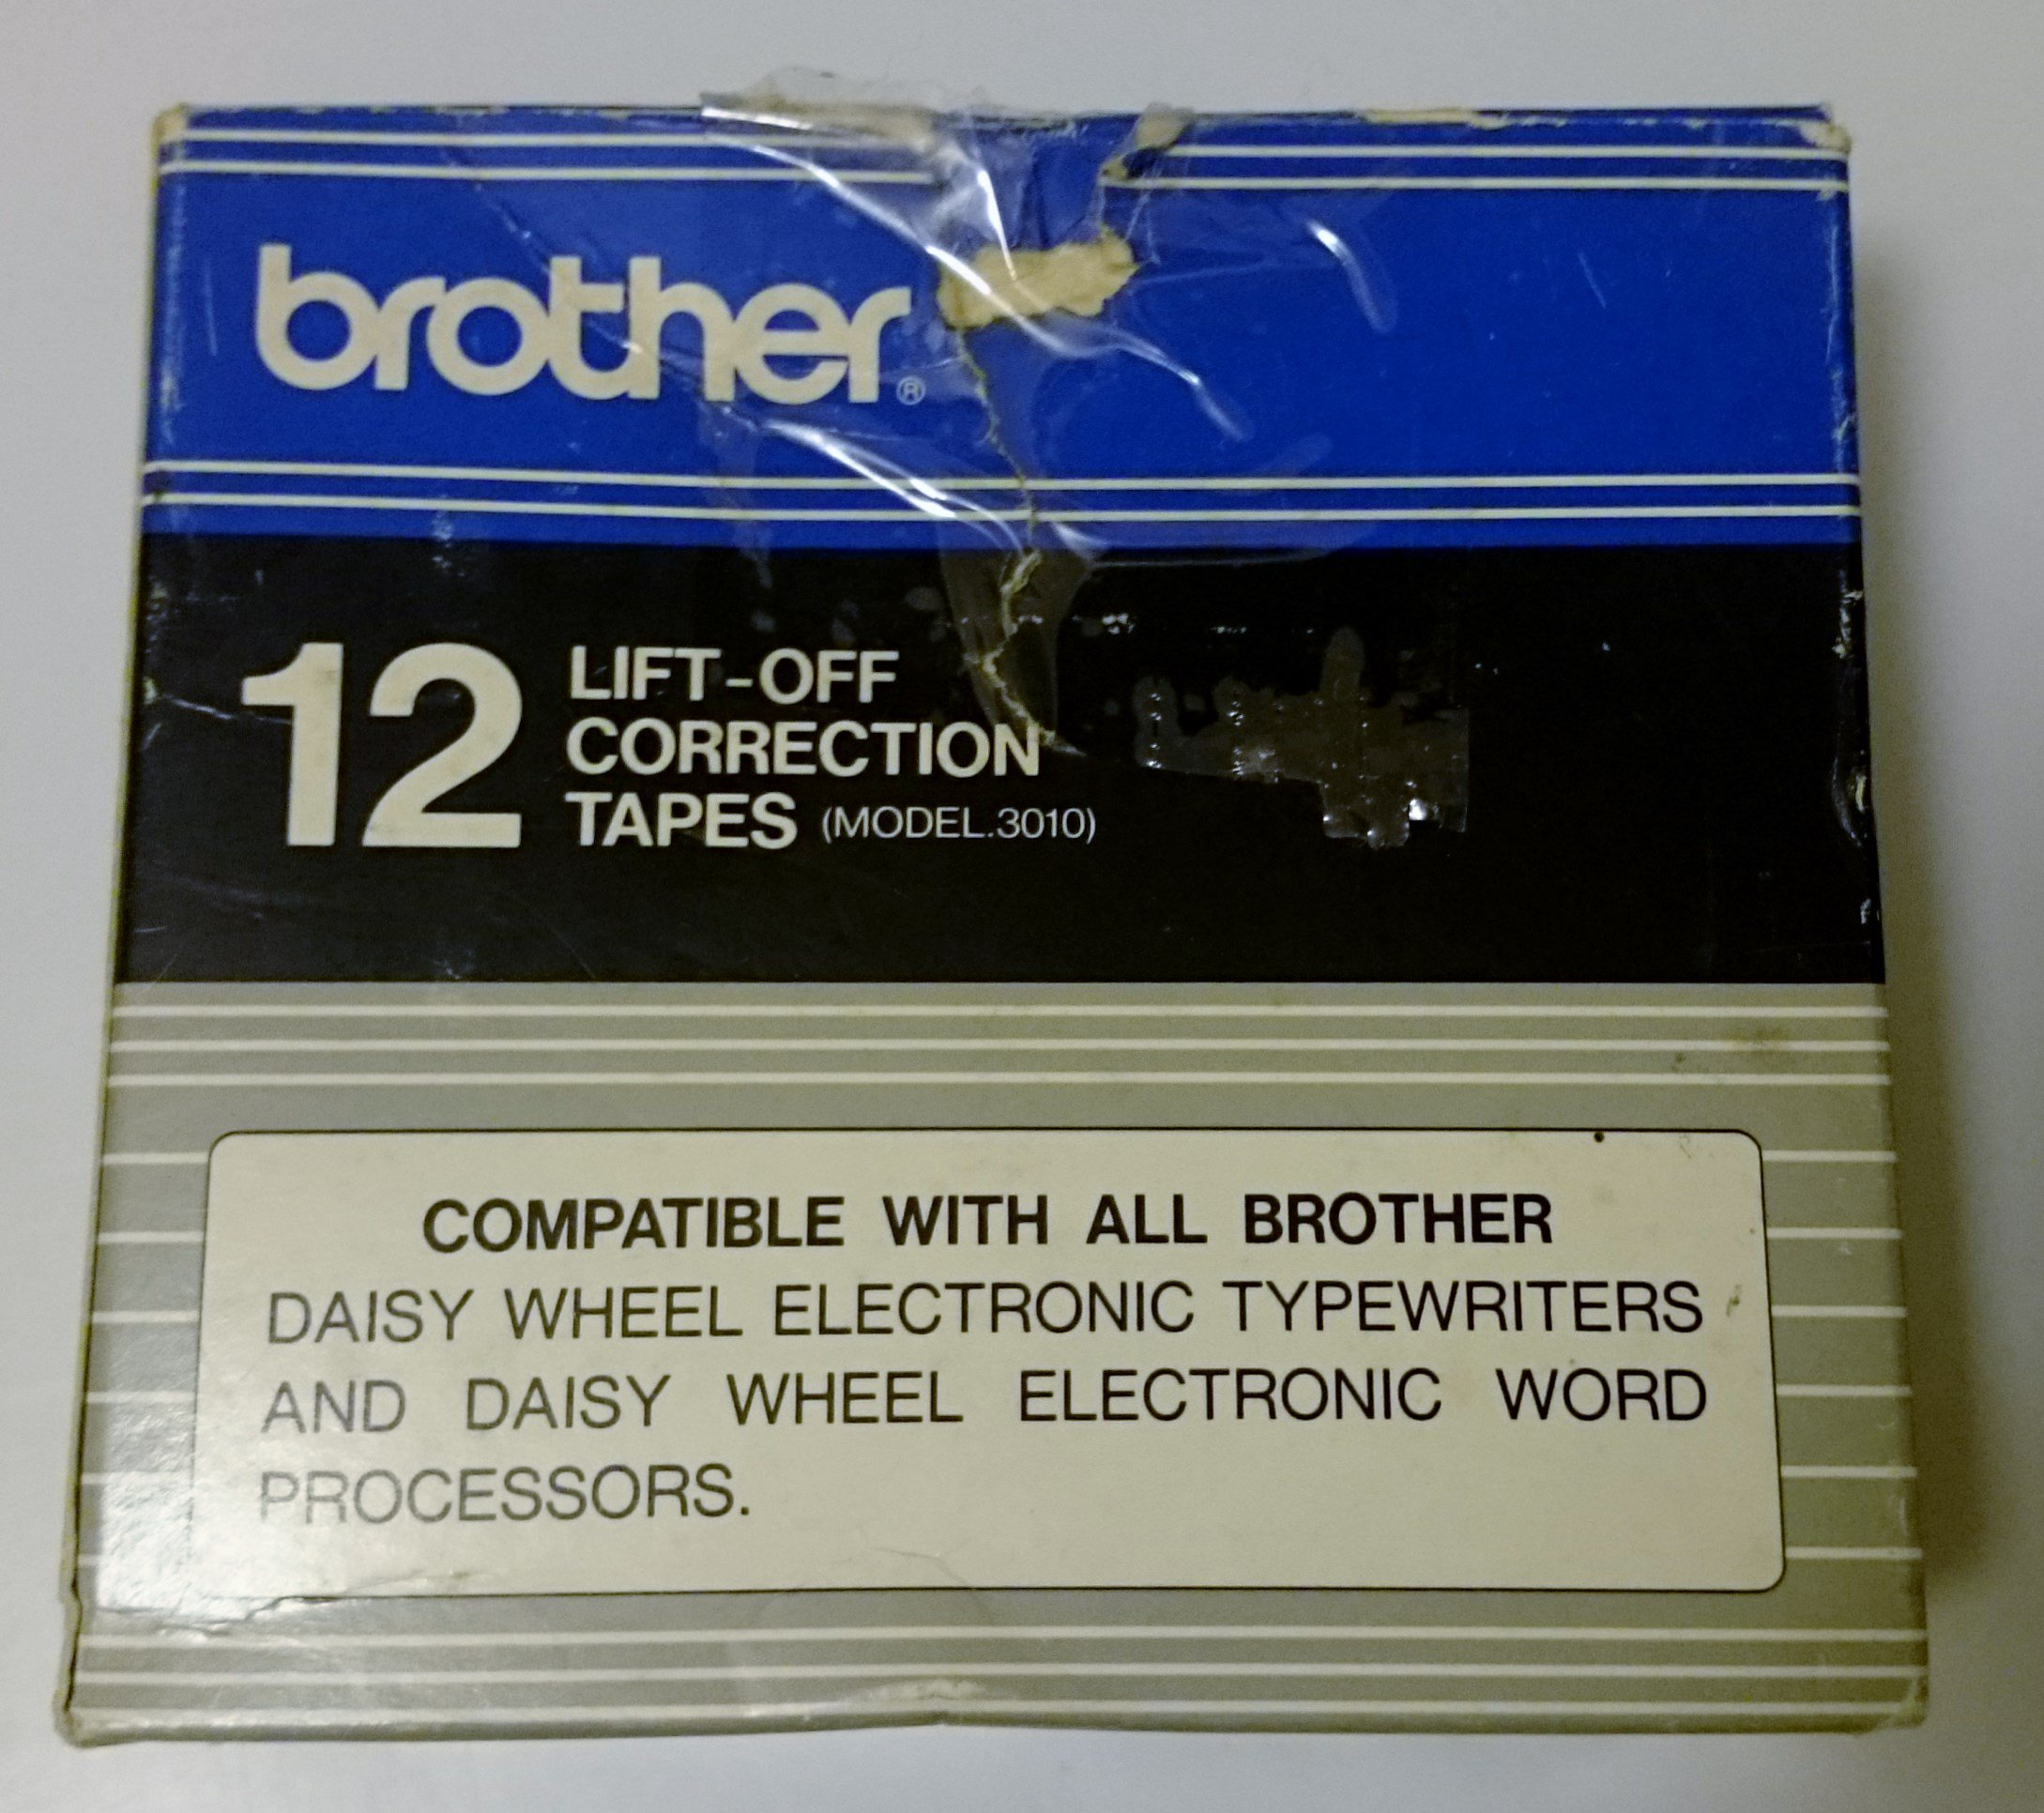 Brother Model 3010 Lift-Off Tapes, Pack Of 12 by Brother (Image #2)